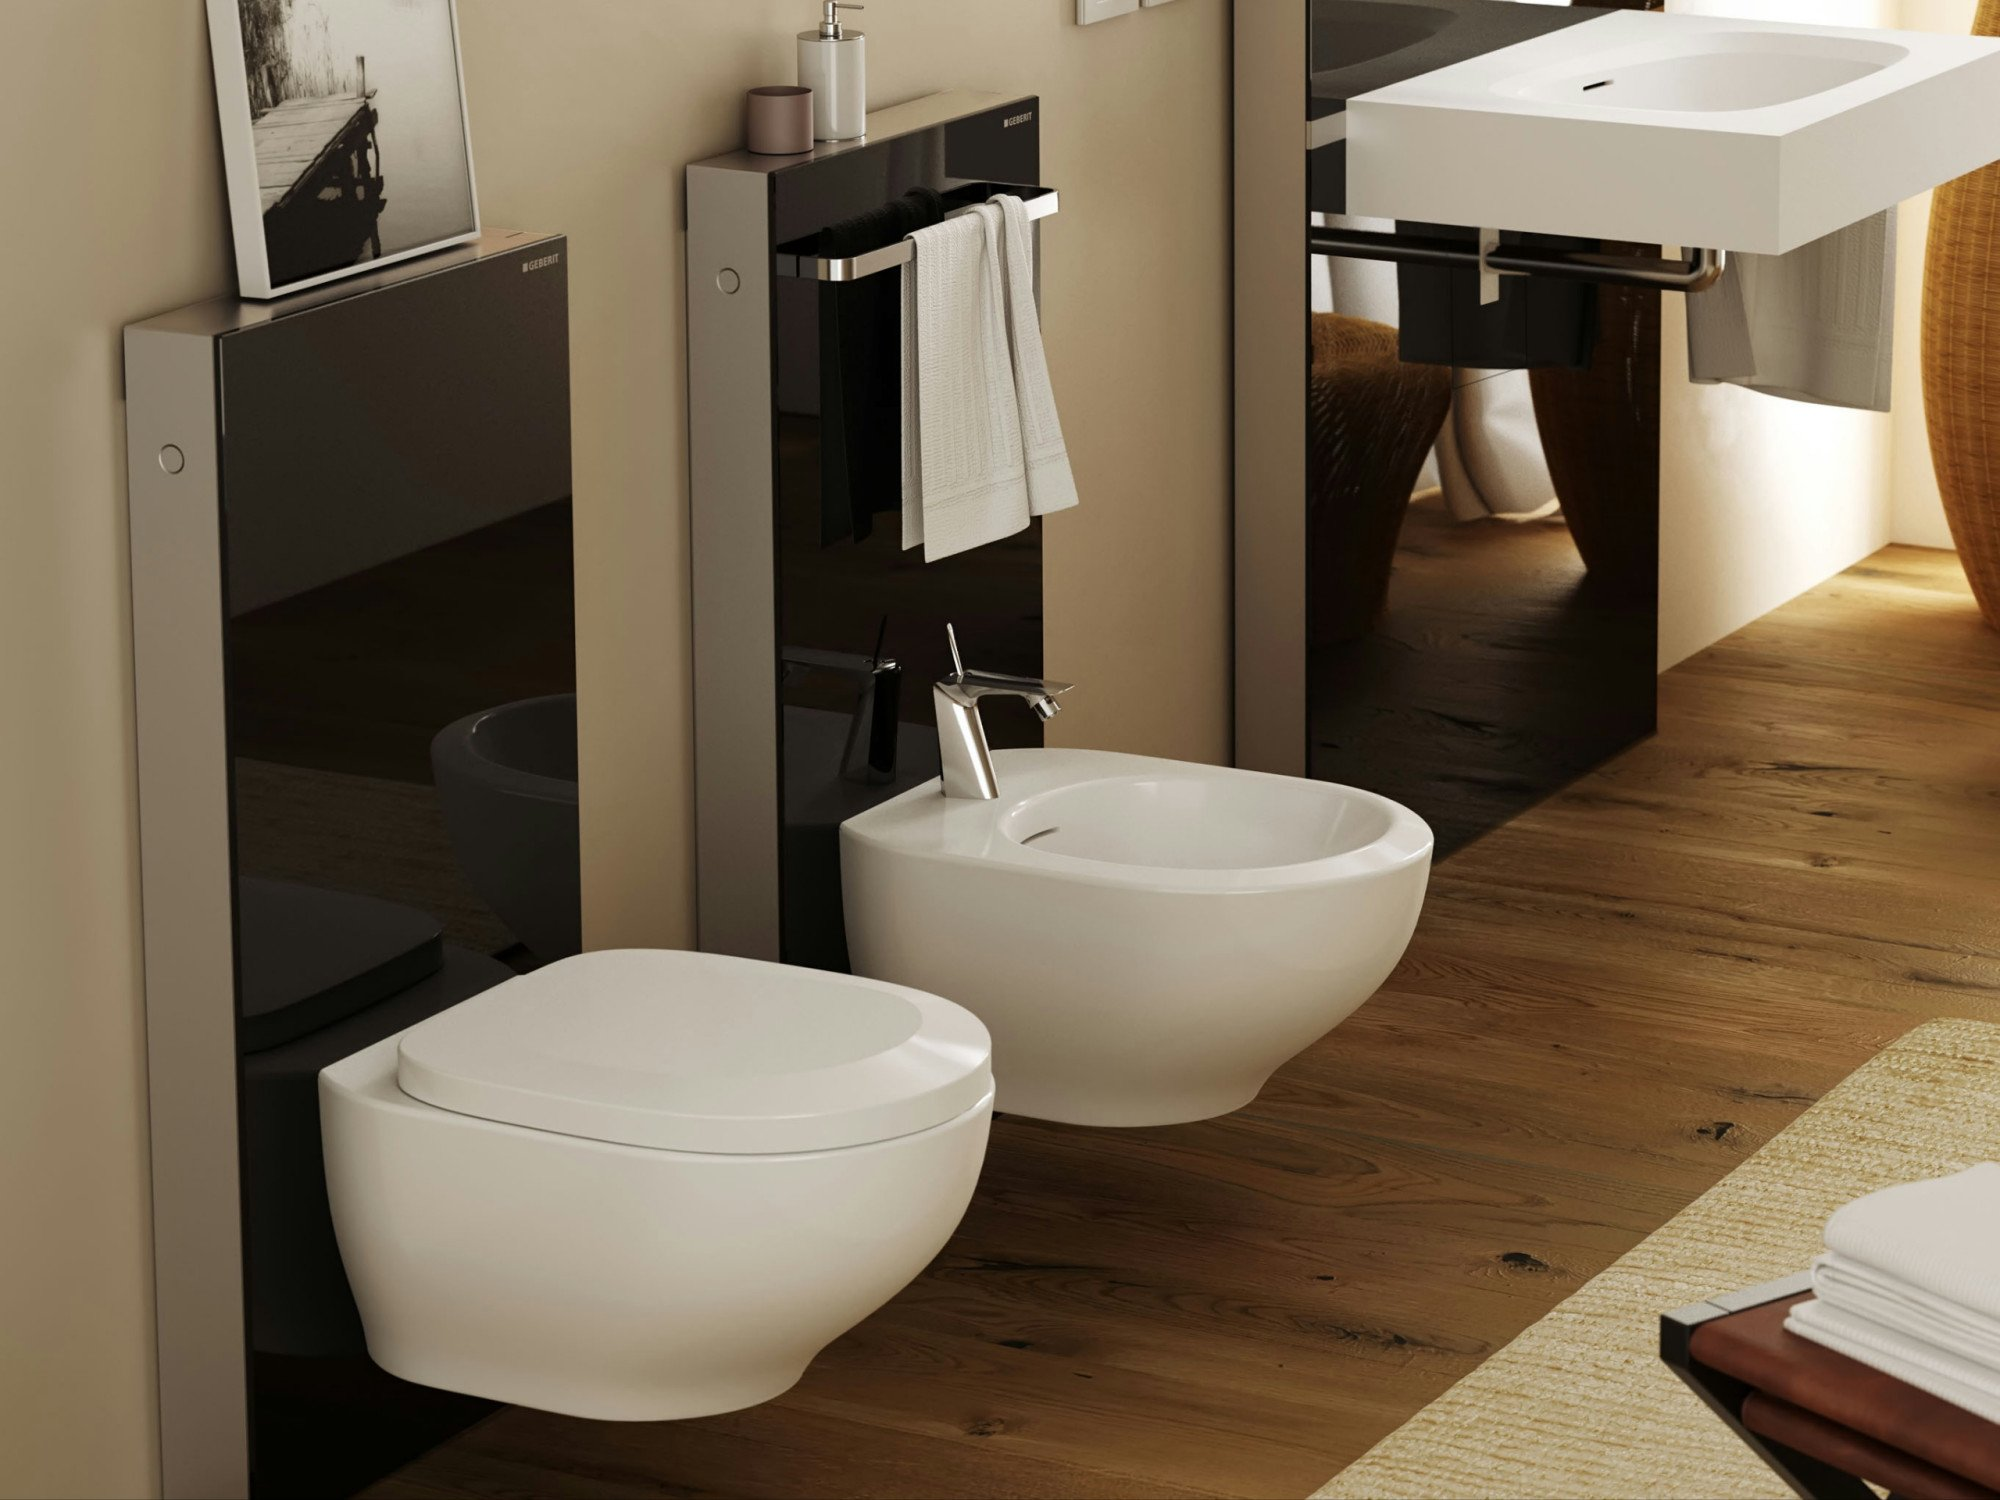 flache vorwandinstallation f r wc bidet und waschtisch. Black Bedroom Furniture Sets. Home Design Ideas